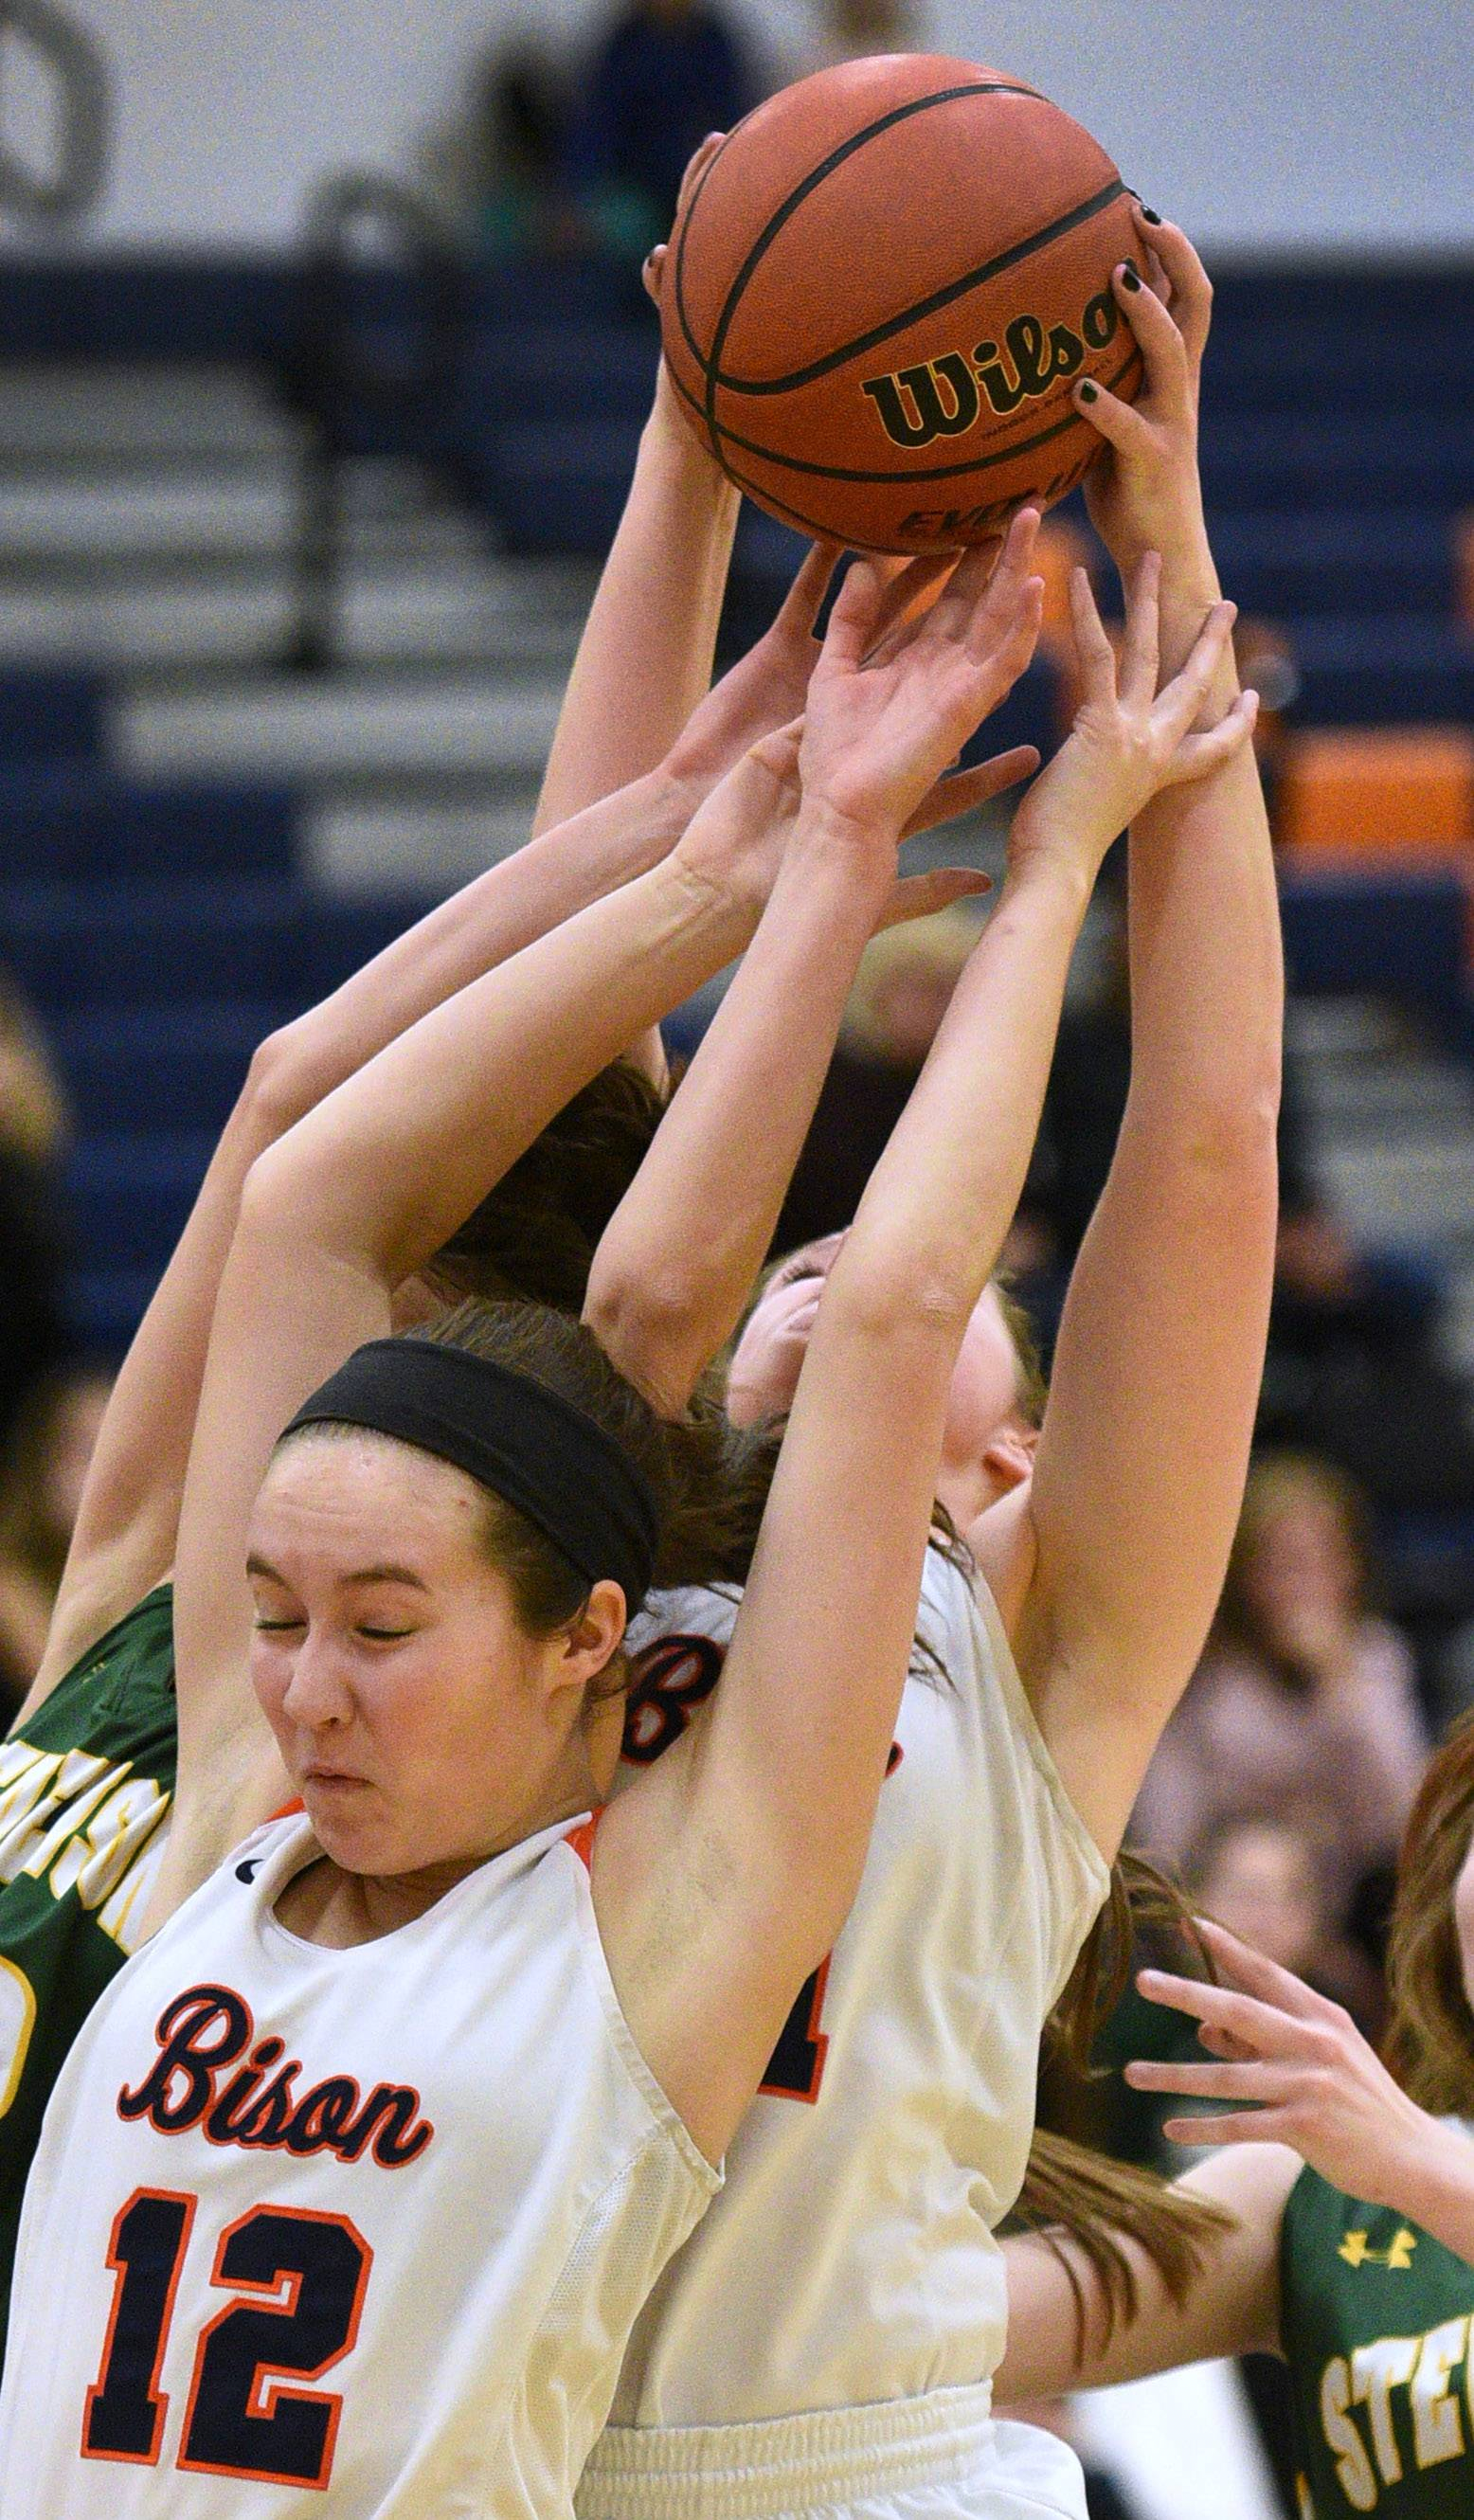 Buffalo Grove's Hannah Young (12) is in the thick of a rebound battle during Monday's girls basketball game against Stevenson in Buffalo Grove.